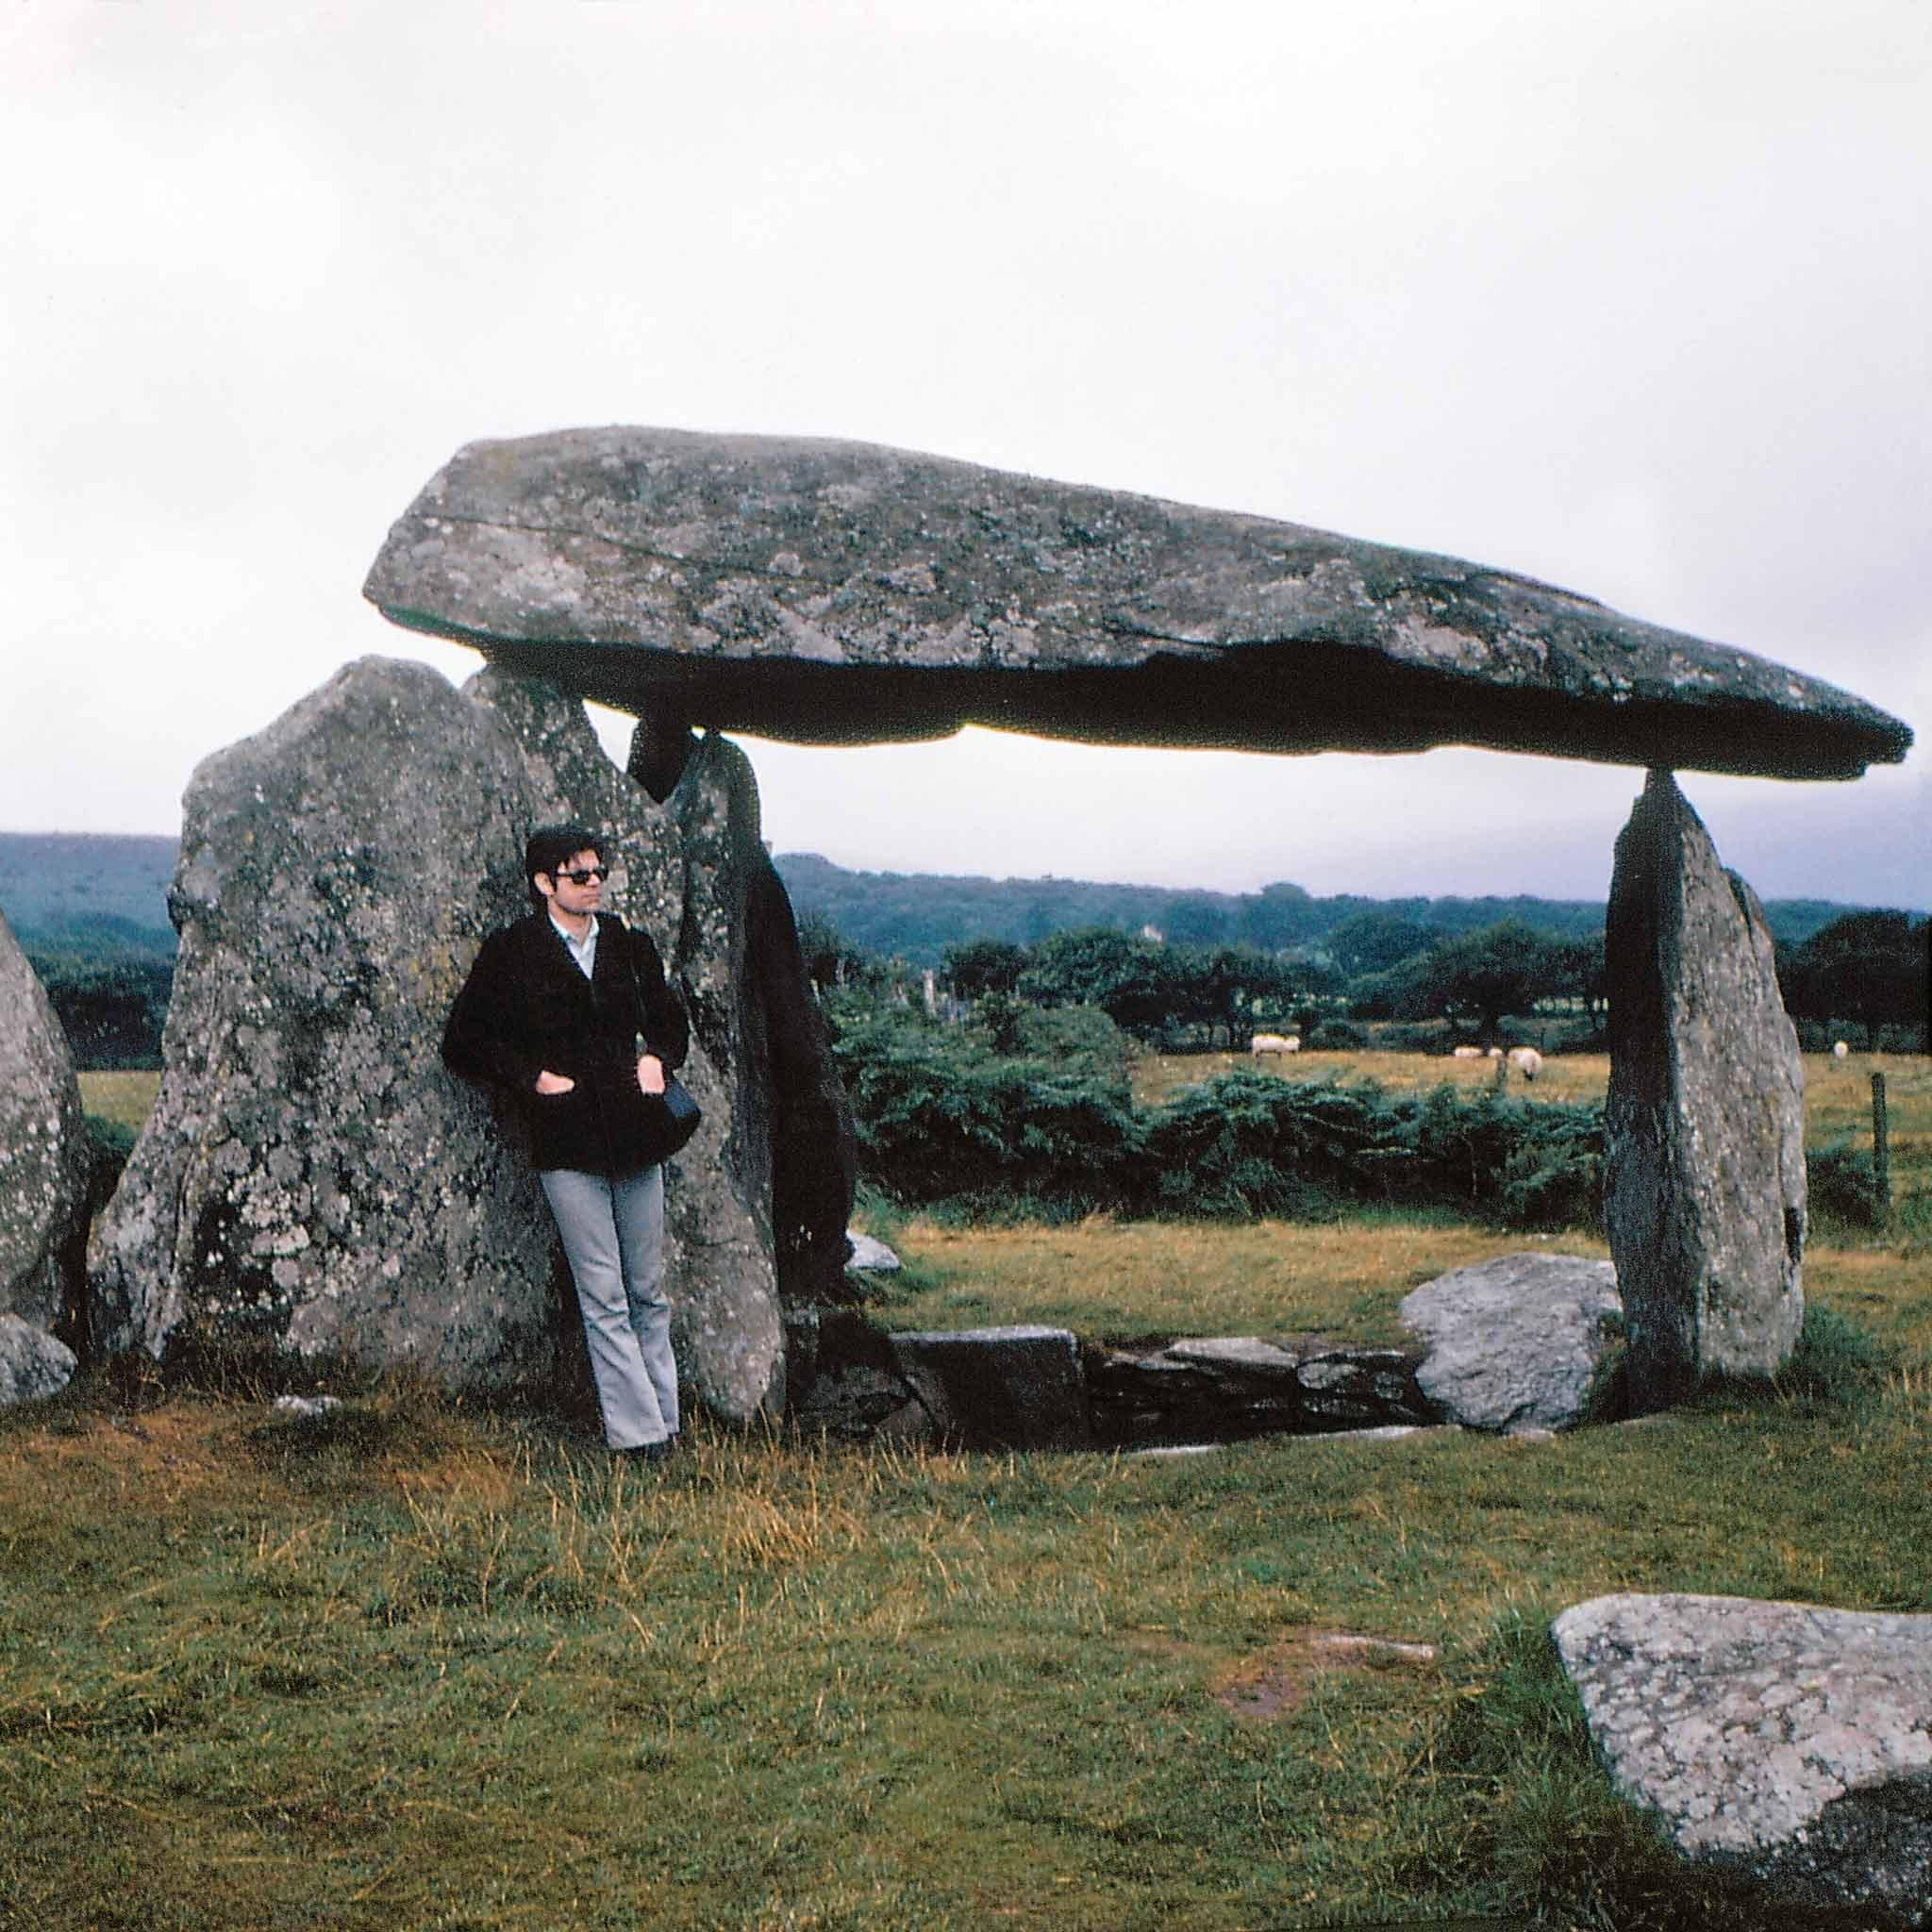 Robert Smithson posing with a dolmen at Pembrokeshire National Park in Wales. Photograph by Nancy Holt.